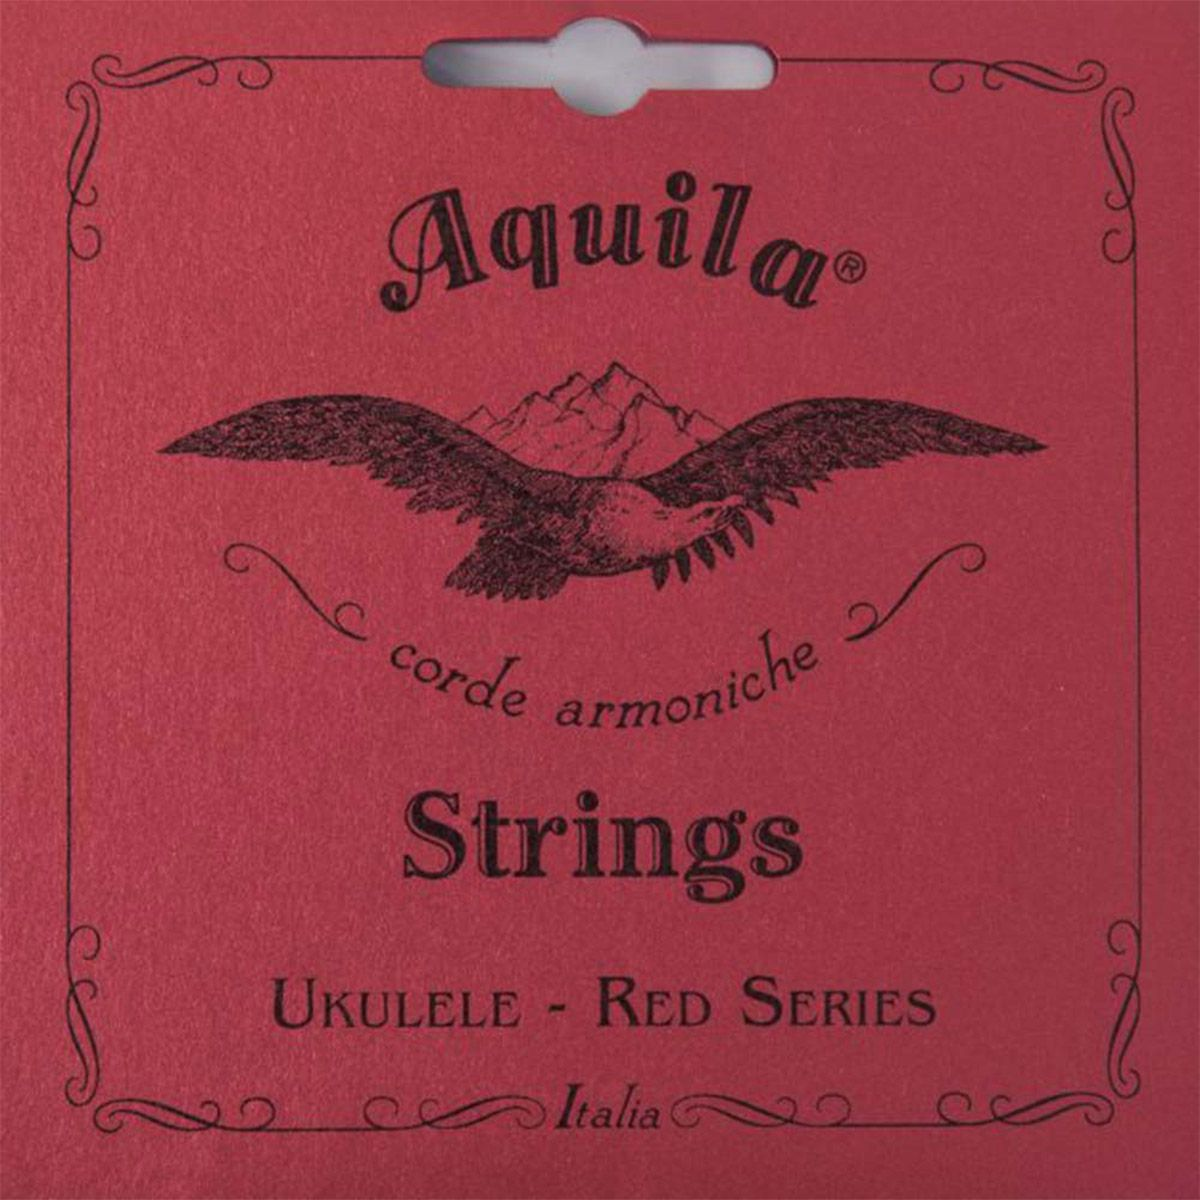 Encordoamento Aquila 84U Red Series Low G Ukulele Soprano